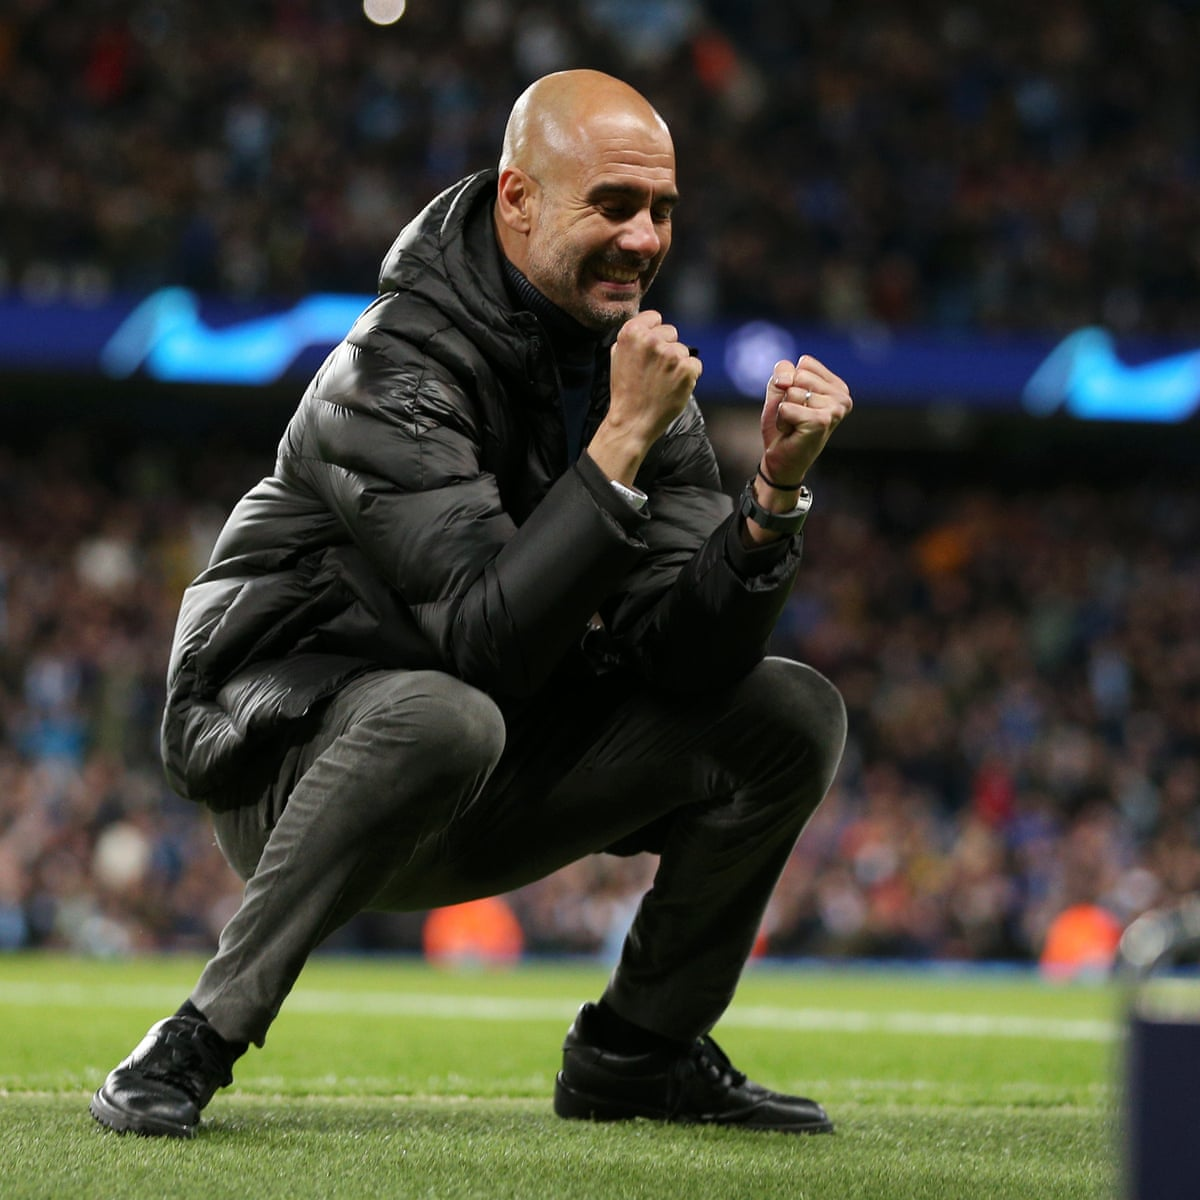 What Next For Manchester City After Champions League Ban is Resolved